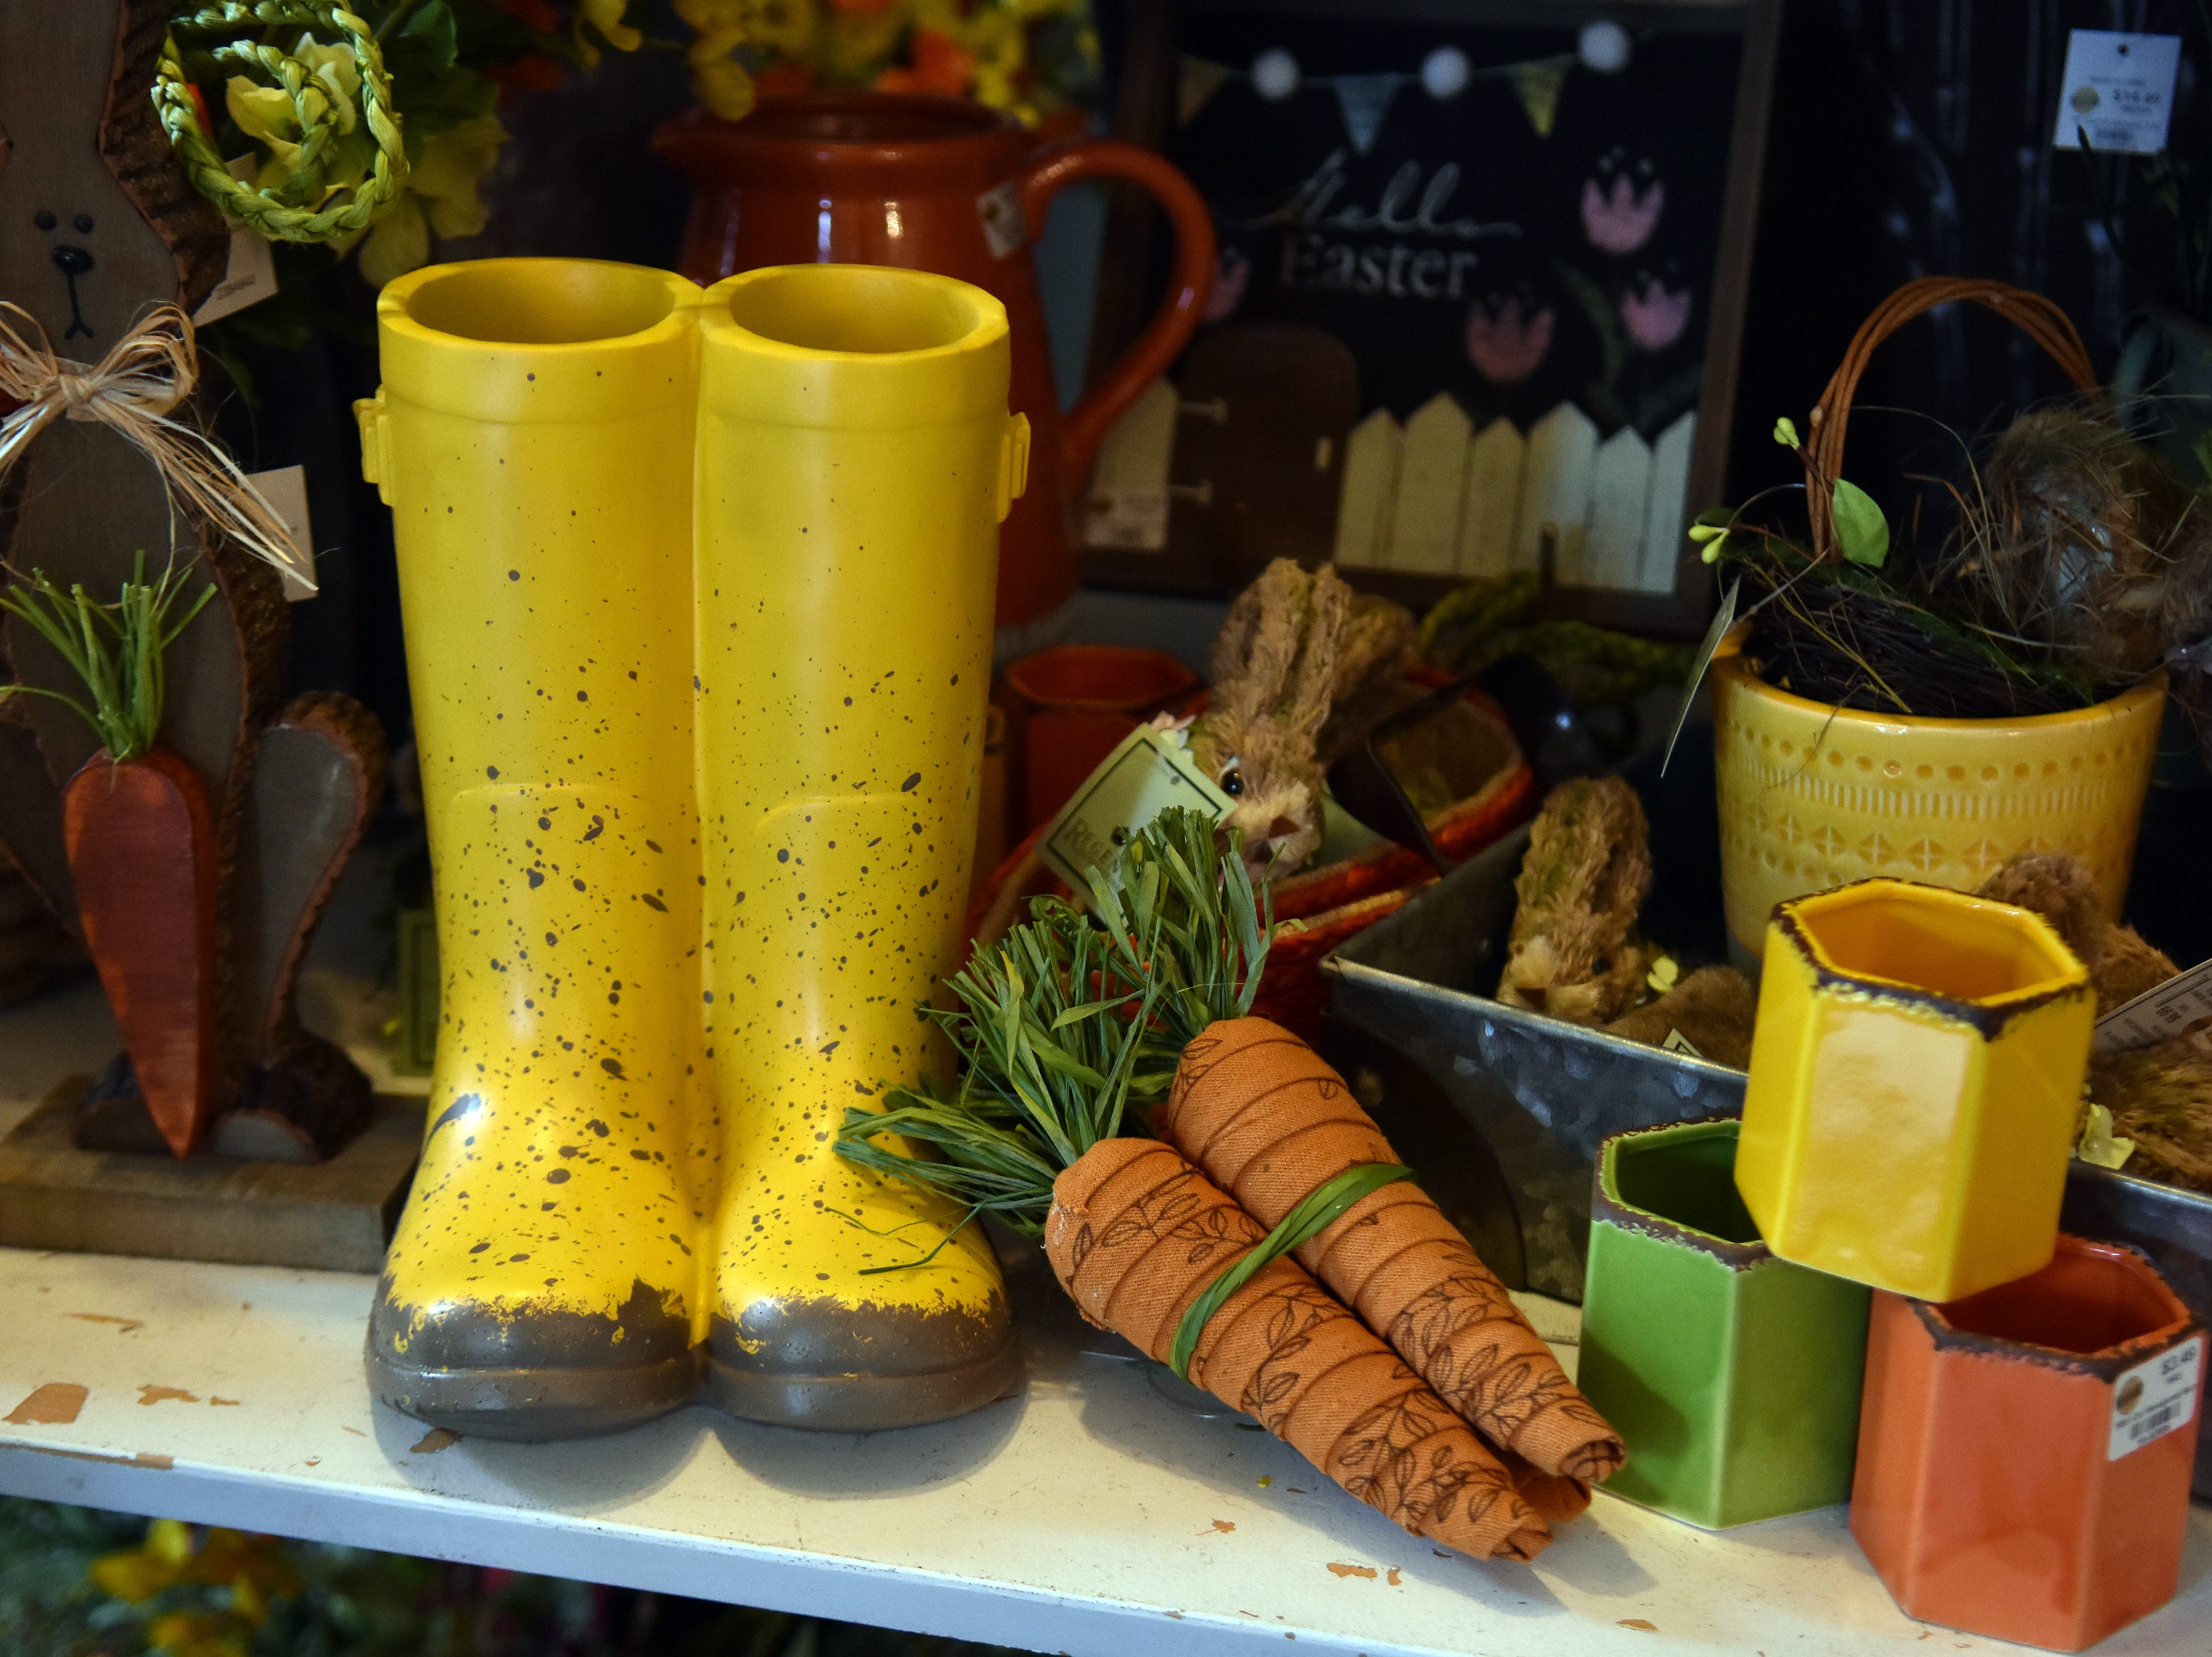 Yellow rain boots brighten up any rainy day. Check out the array of home decor items at Real Deals.